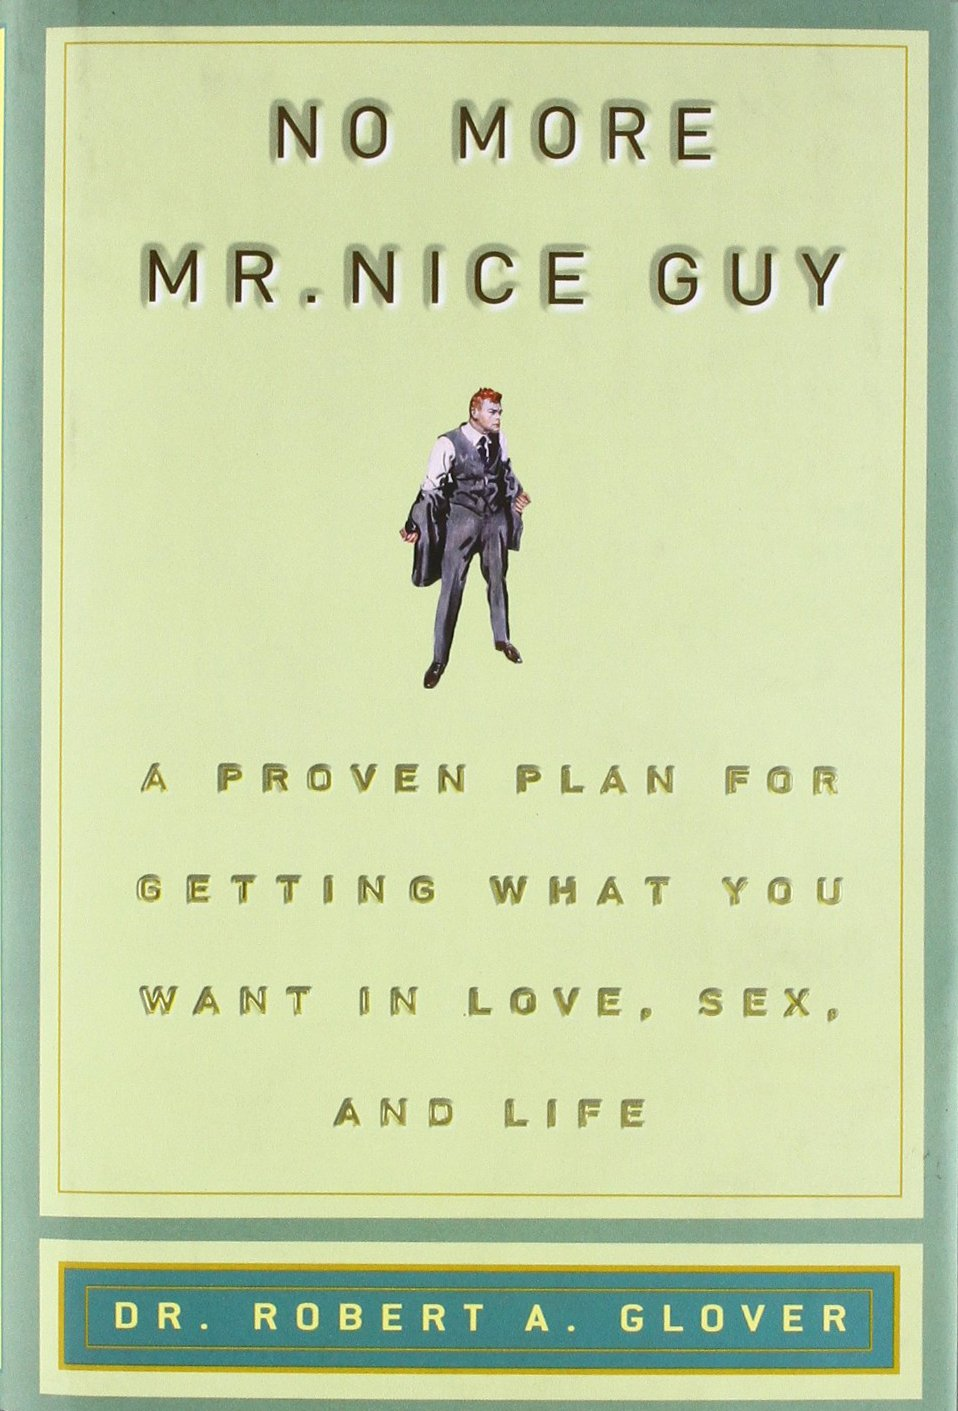 No more mr nice guy by robert a glover